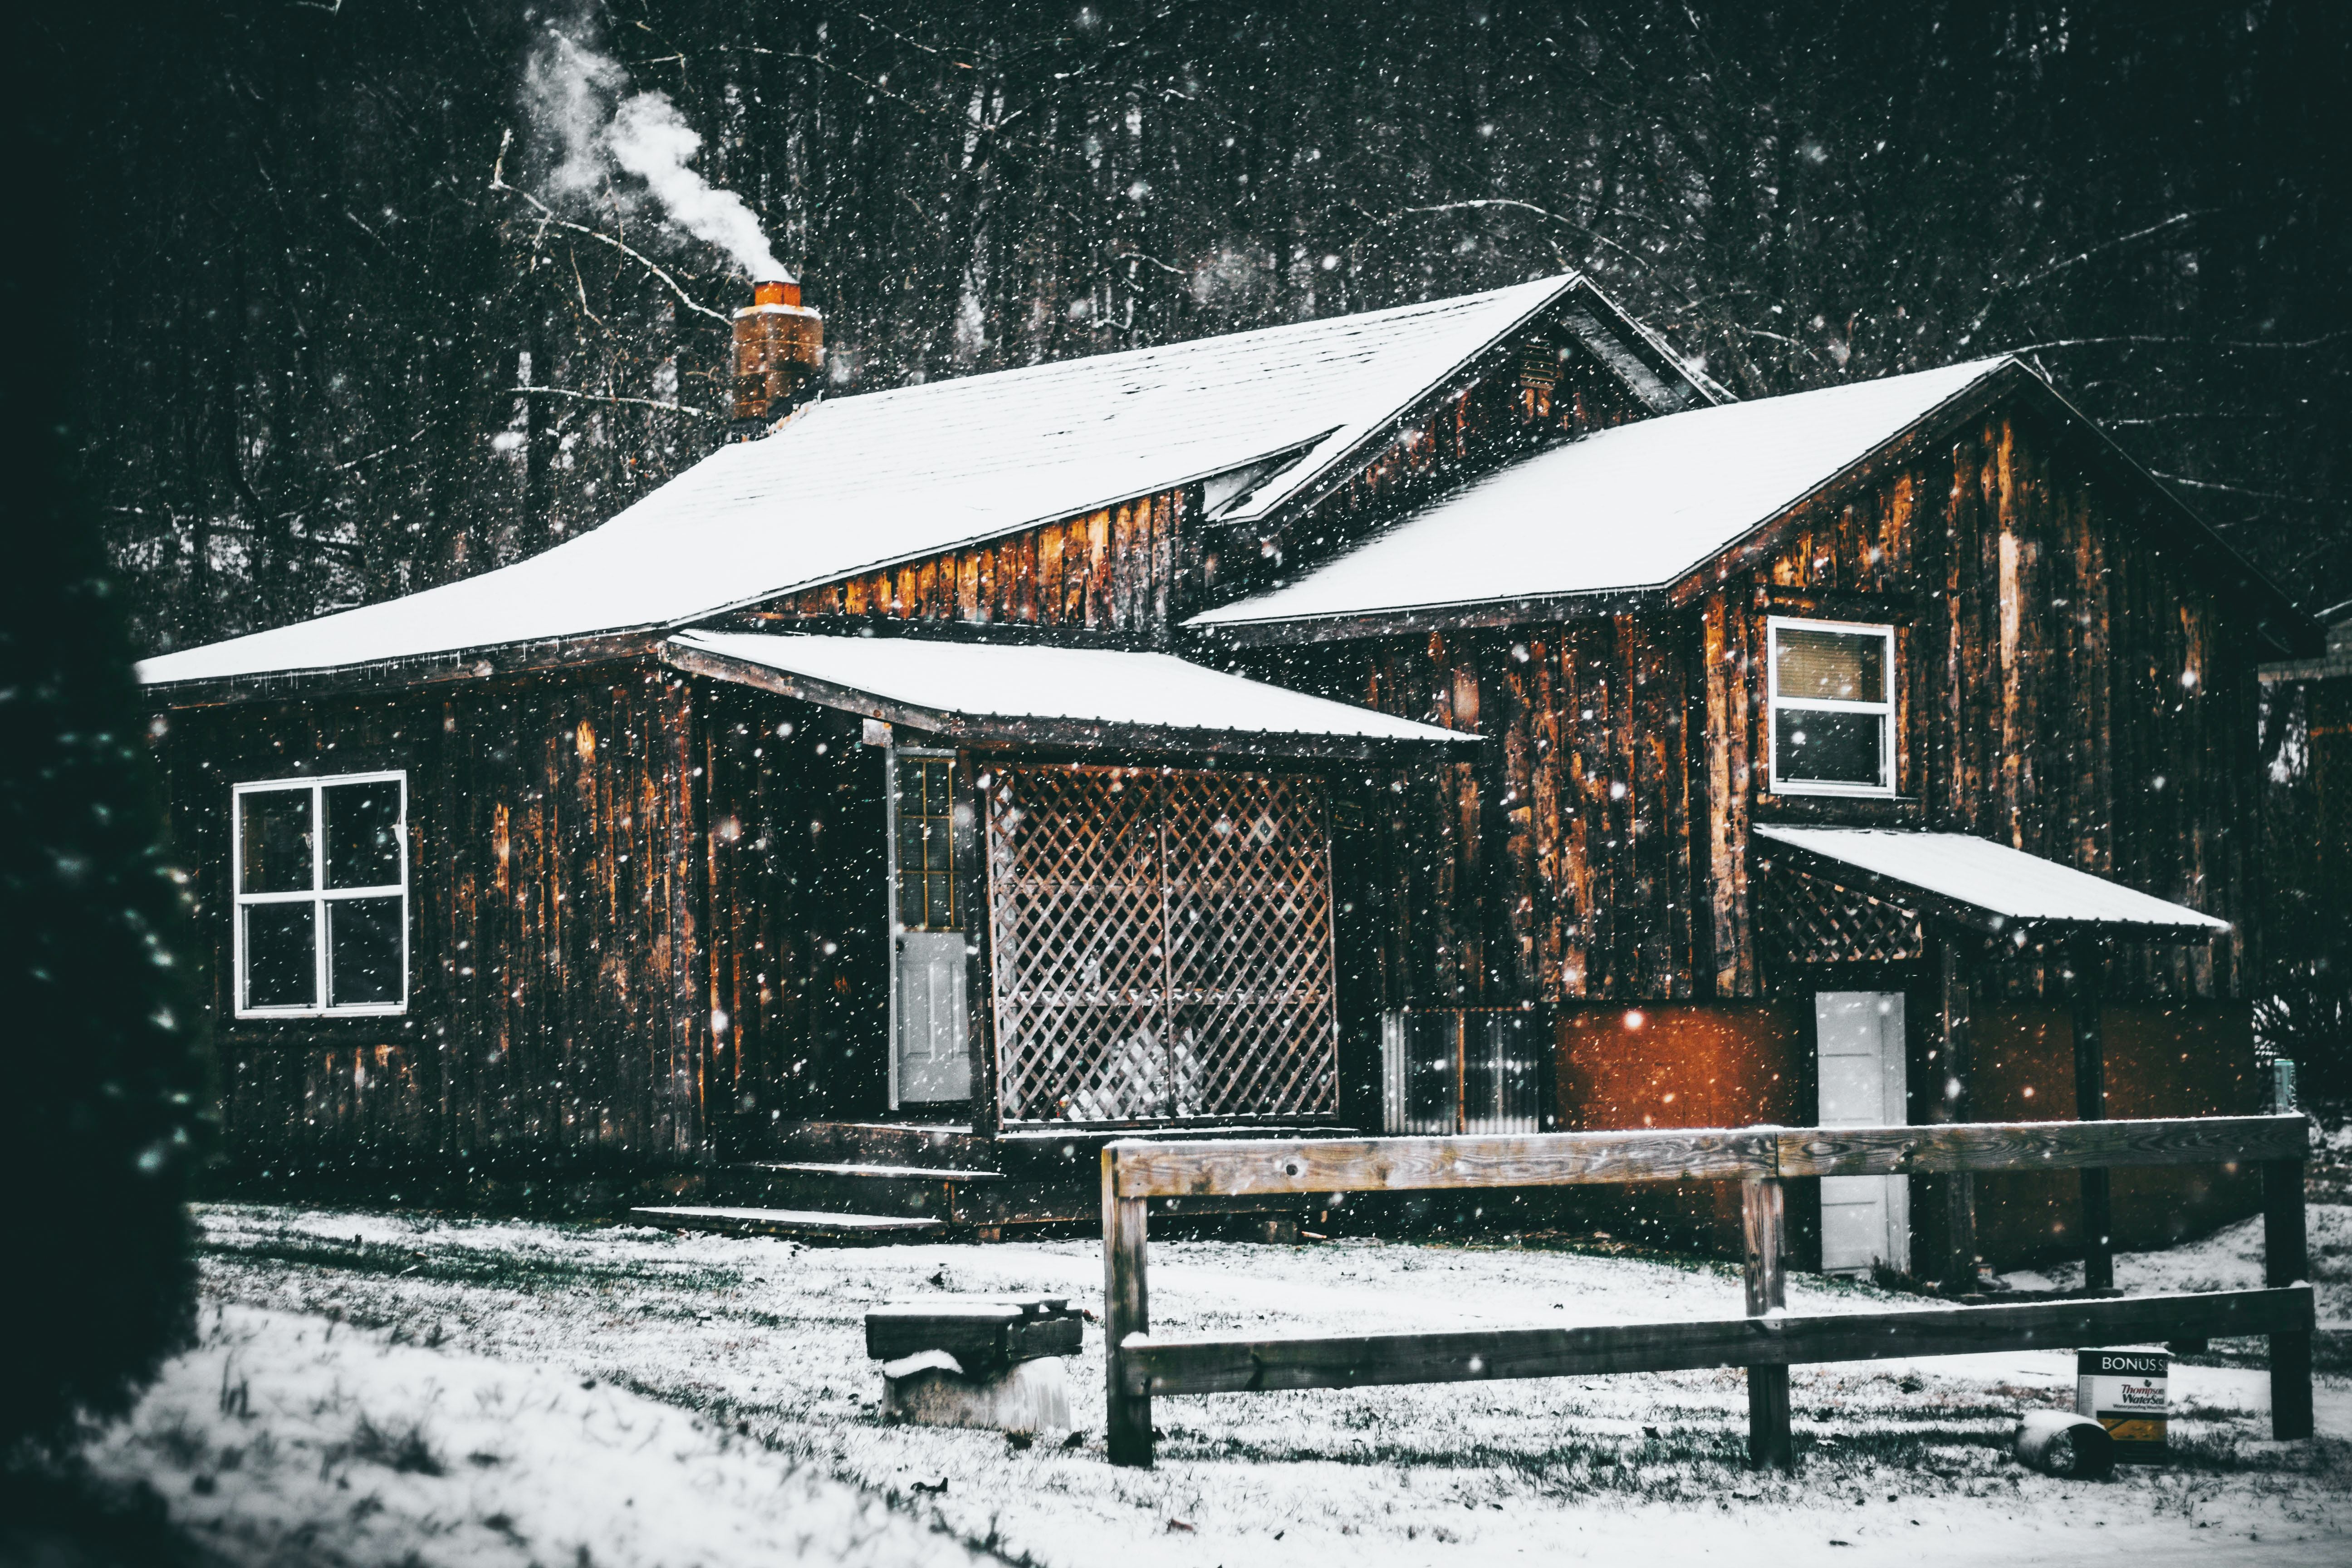 A cabin in the woods during the winter with snow over the roof